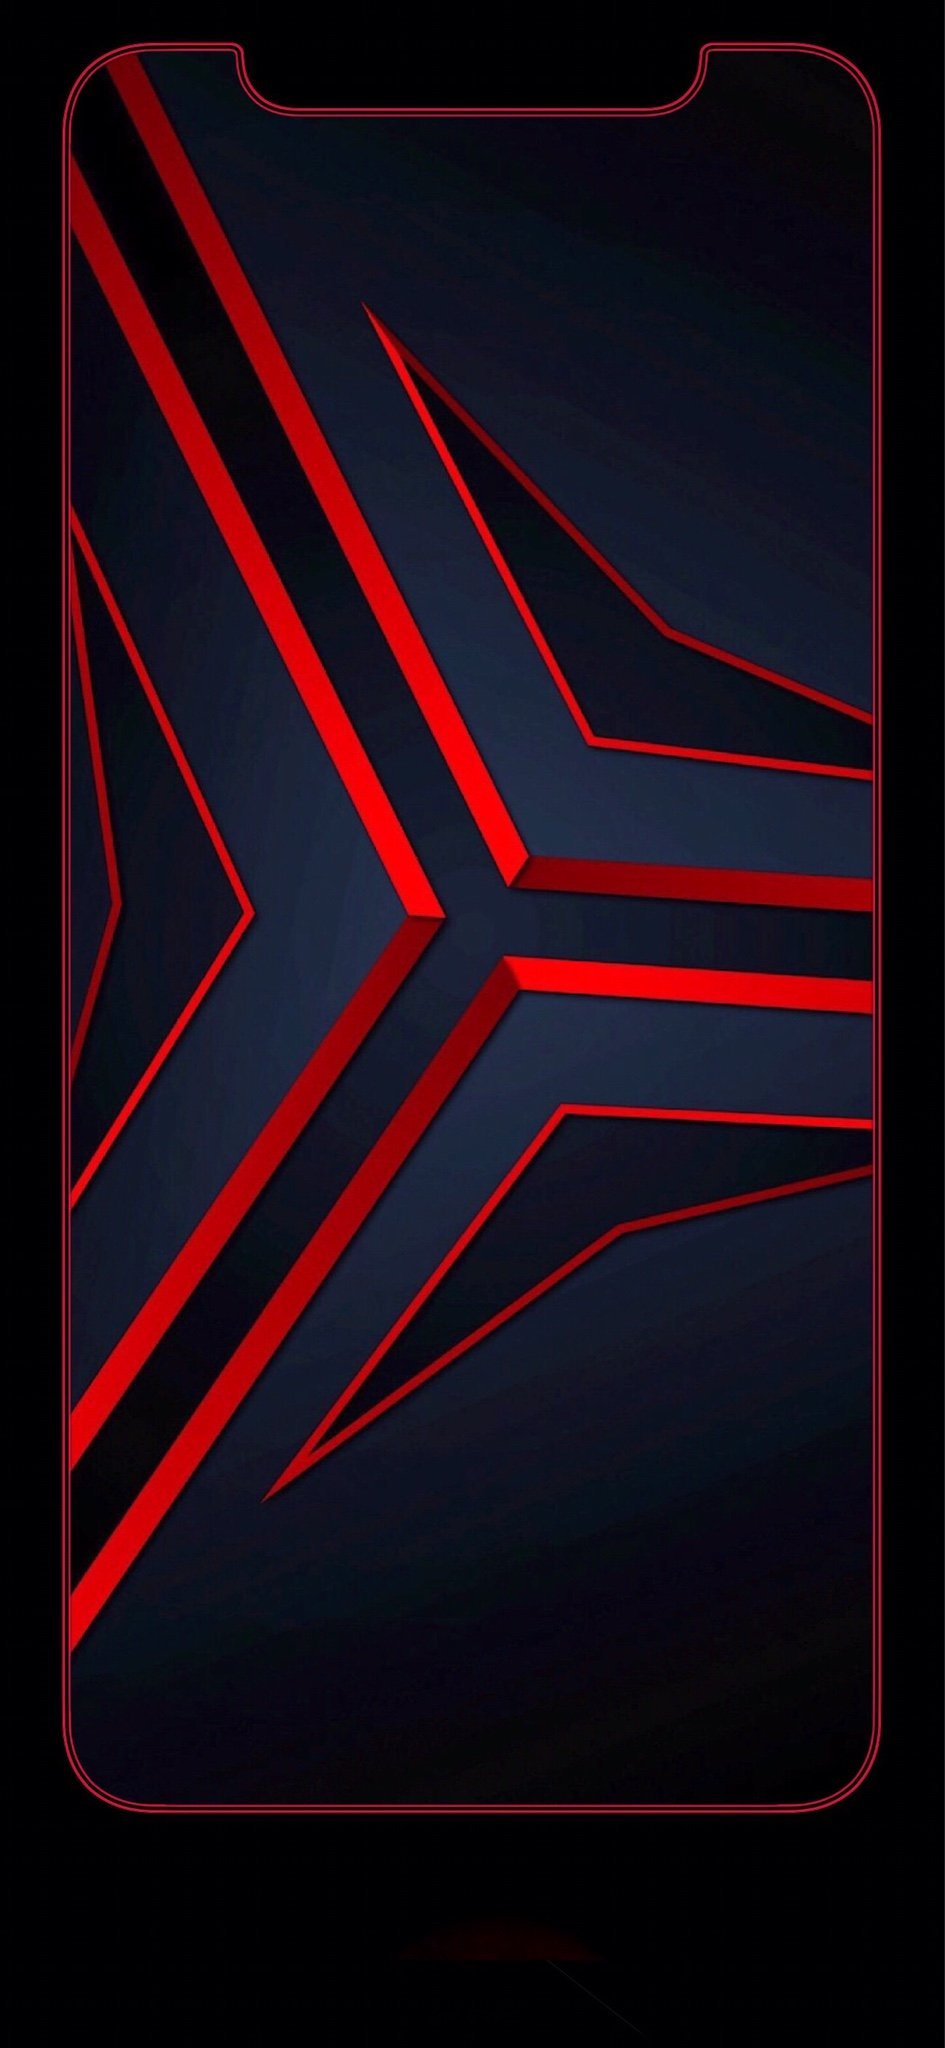 iron man iphone x wallpaper